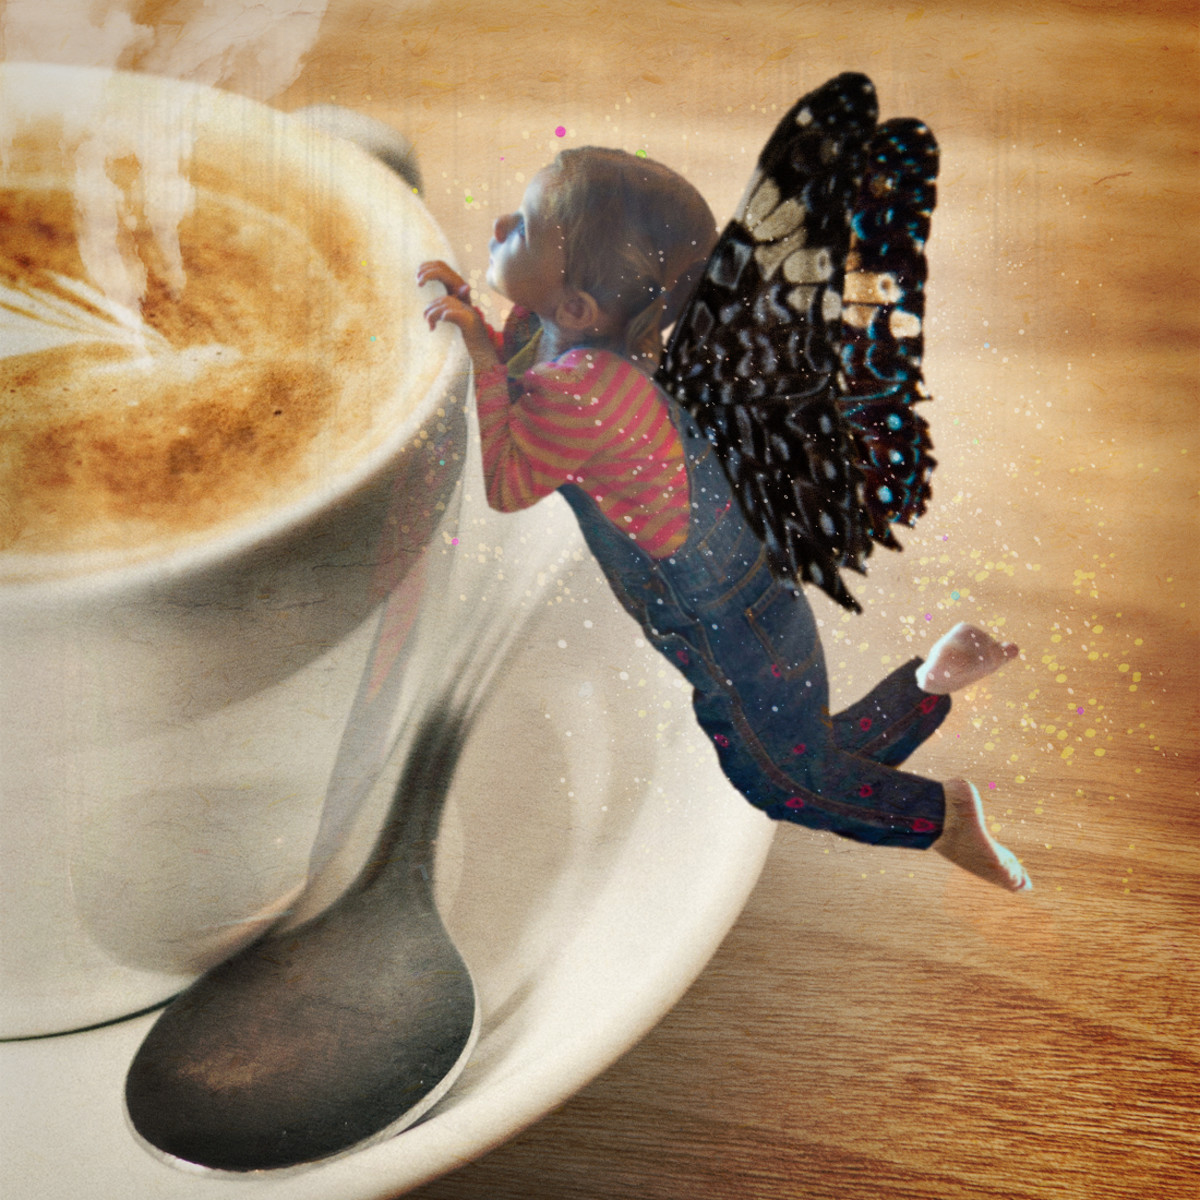 My granddaughter, Ivy, as a Coffee Fairy.